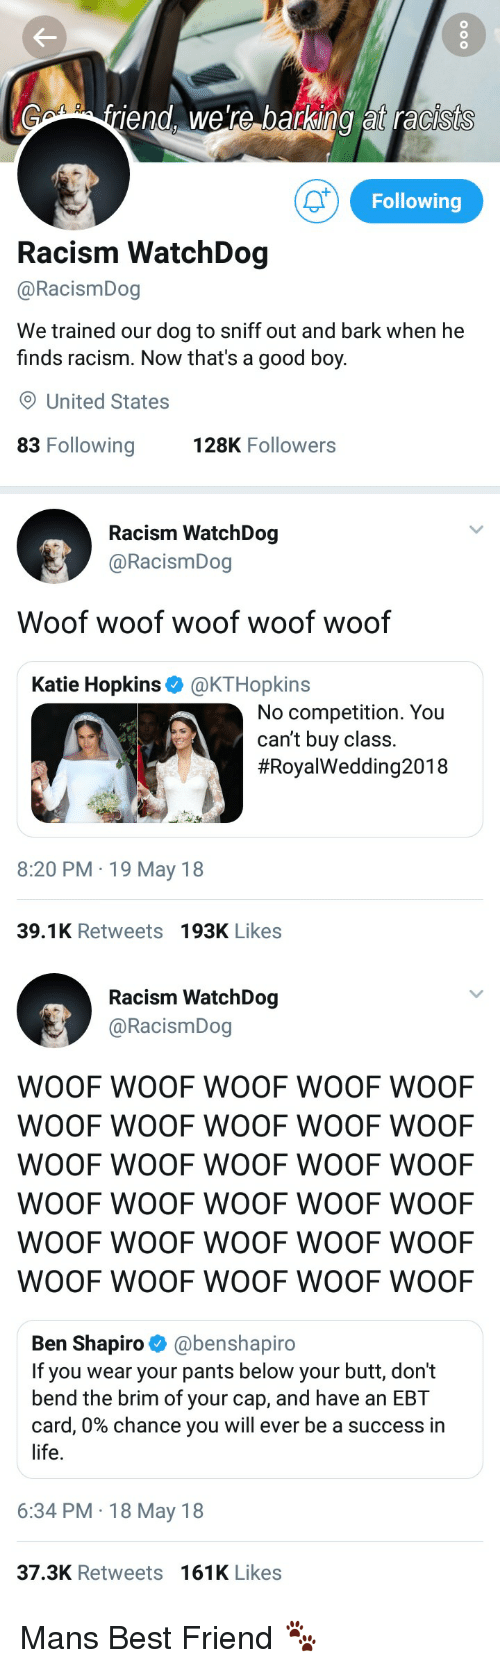 Best Friend, Blackpeopletwitter, and Butt: iend, were barking at racists  Following  Racism WatchDog  @RacismDog  We trained our dog to sniff out and bark when he  finds racism. Now that's a good boy.  O United States  83 Following  128K Followers   Racism WatchDog  @RacismDog  Woof woof woof woof woof  Katie Hopkins @KTHopkins  No competition. You  can't buy class.  #RoyalWedding2018  8:20 PM 19 May 18  39.1K Retweets 193K Likes   Racism WatchDog  @RacismDog  WOOF WOOF WOOF WOOF WOOF  WOOF WOOF WOOF WOOF WOOF  WOOF WOOF WOOF WOOF WOOF  WOOF WOOF WOOF WOOF WOOF  WOOF WOOF WOOF WOOF WOOF  WOOF WOOF WOOF WOOF WOOF  Ben Shapiro @benshapiro  If you wear your pants below your butt, don't  bend the brim of your cap, and have an EBT  card, 0% chance you will ever be a success in  life.  6:34 PM 18 May 18  37.3K Retweets 161K Likes Mans Best Friend 🐾